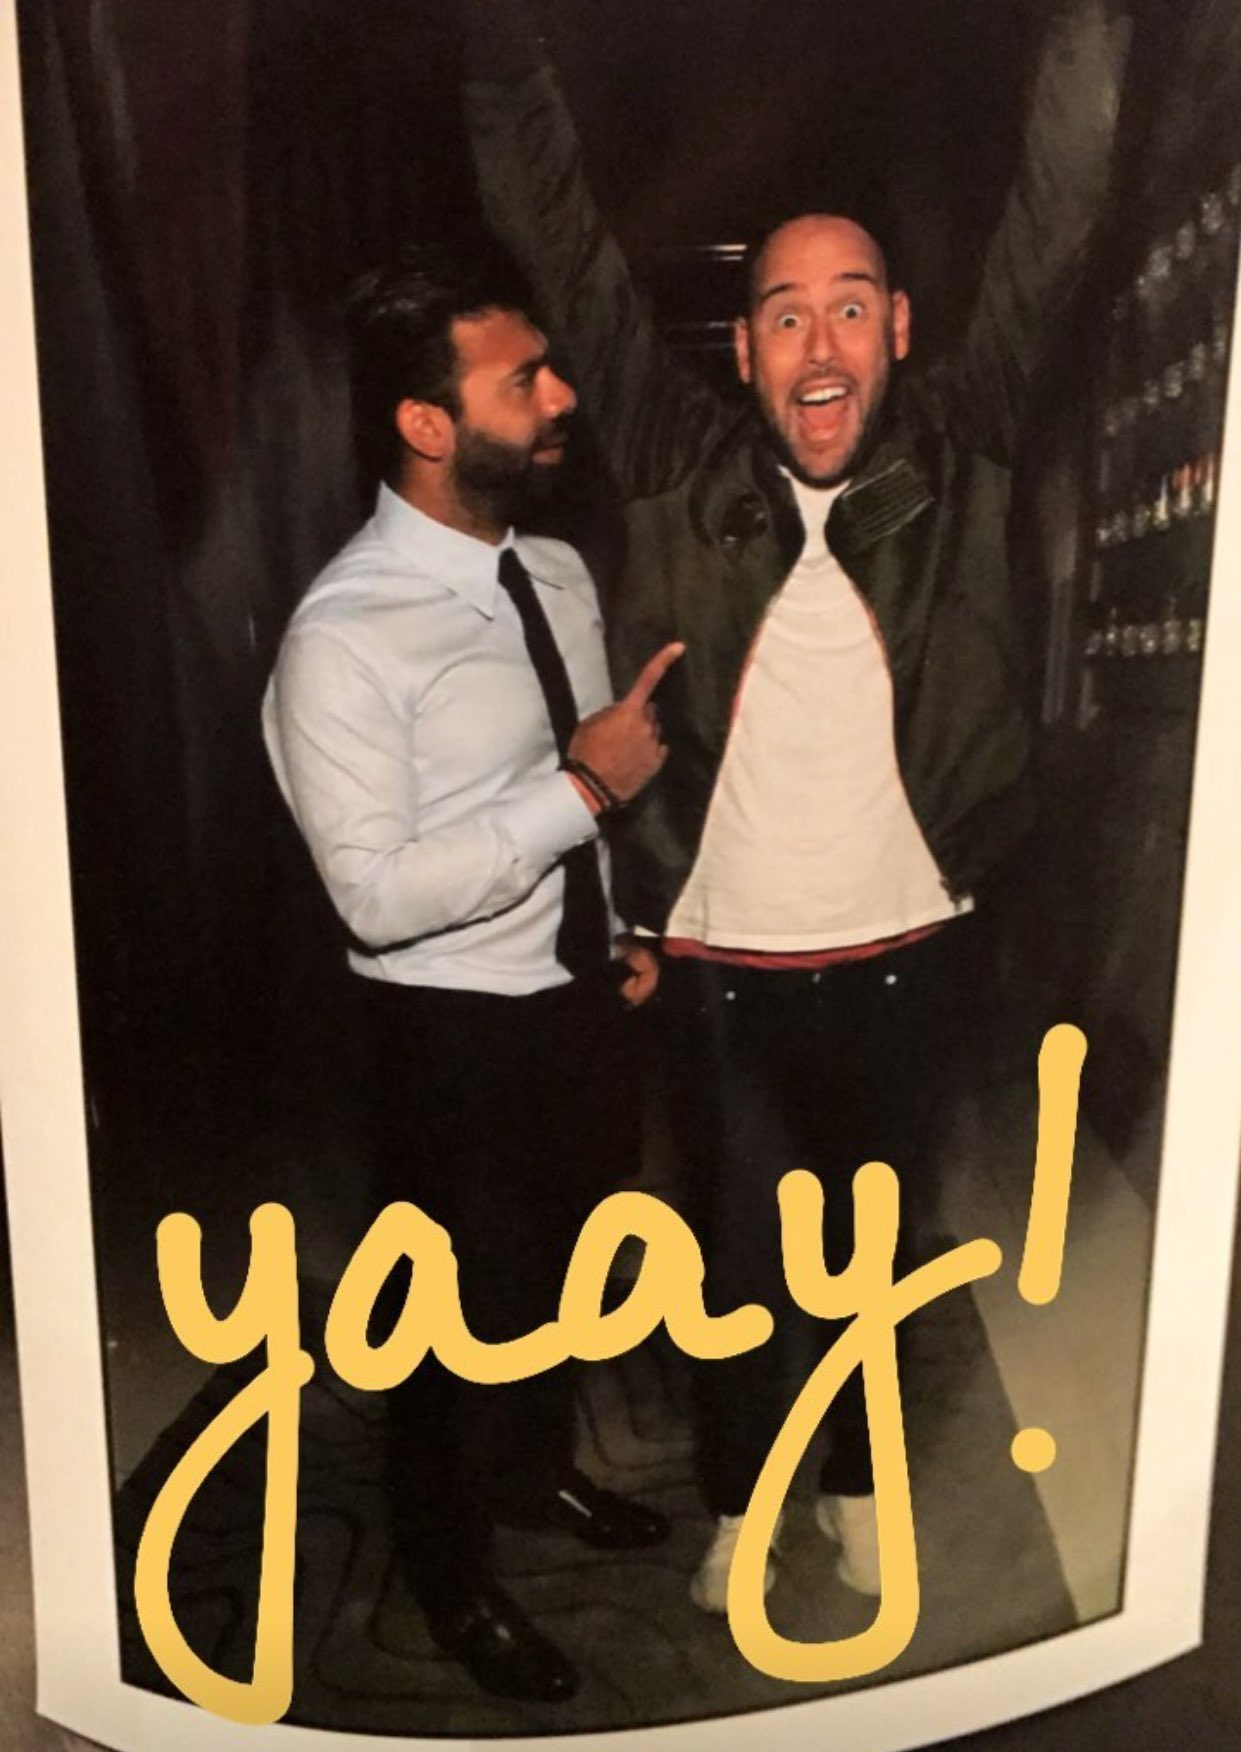 We are excited because we just saw @jamiereuben !!! ������ https://t.co/ACTnHAUAlp